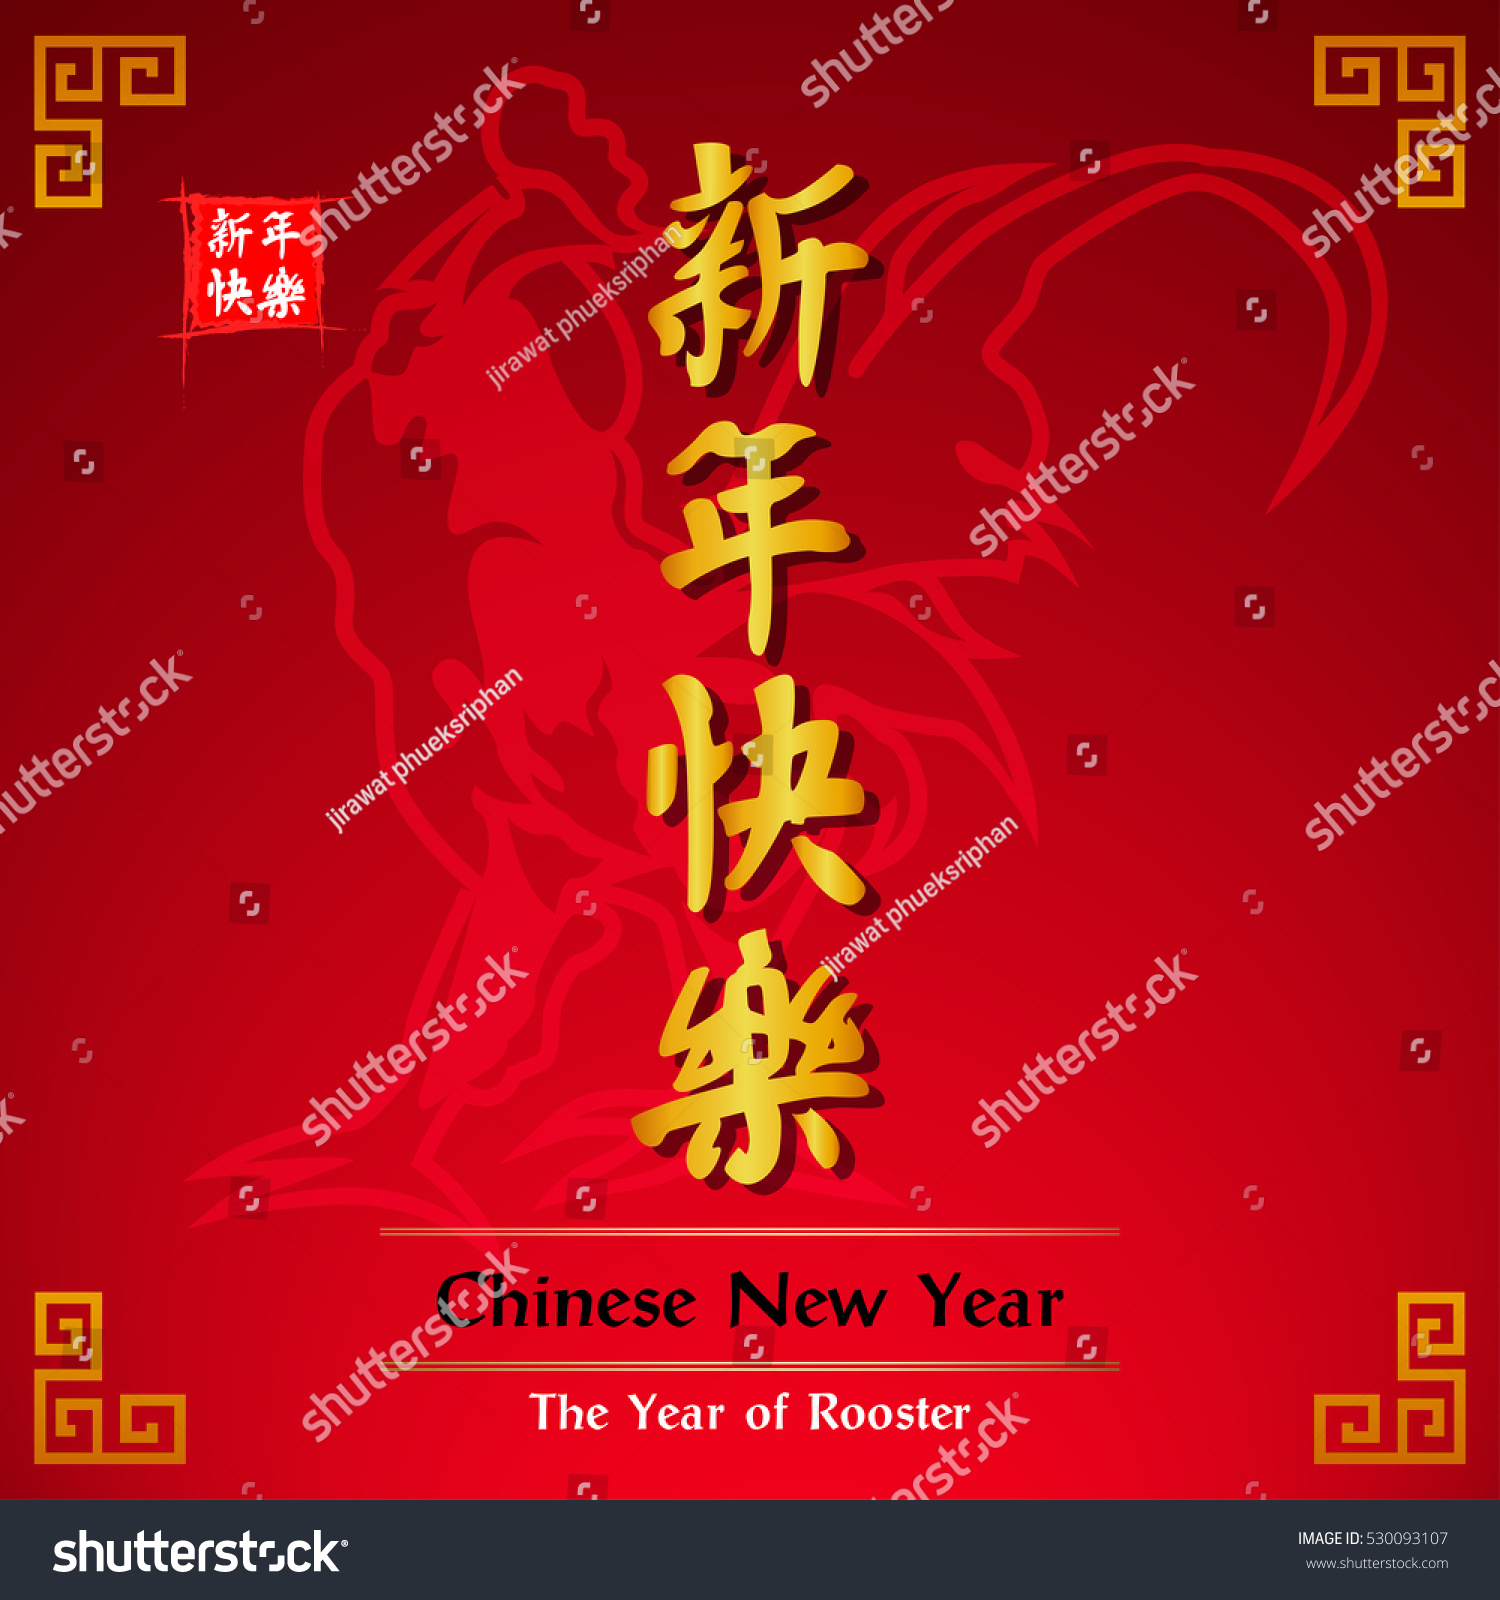 Rooster Chinese New Year 2017 Stock Vector Illustration 530093107 ...